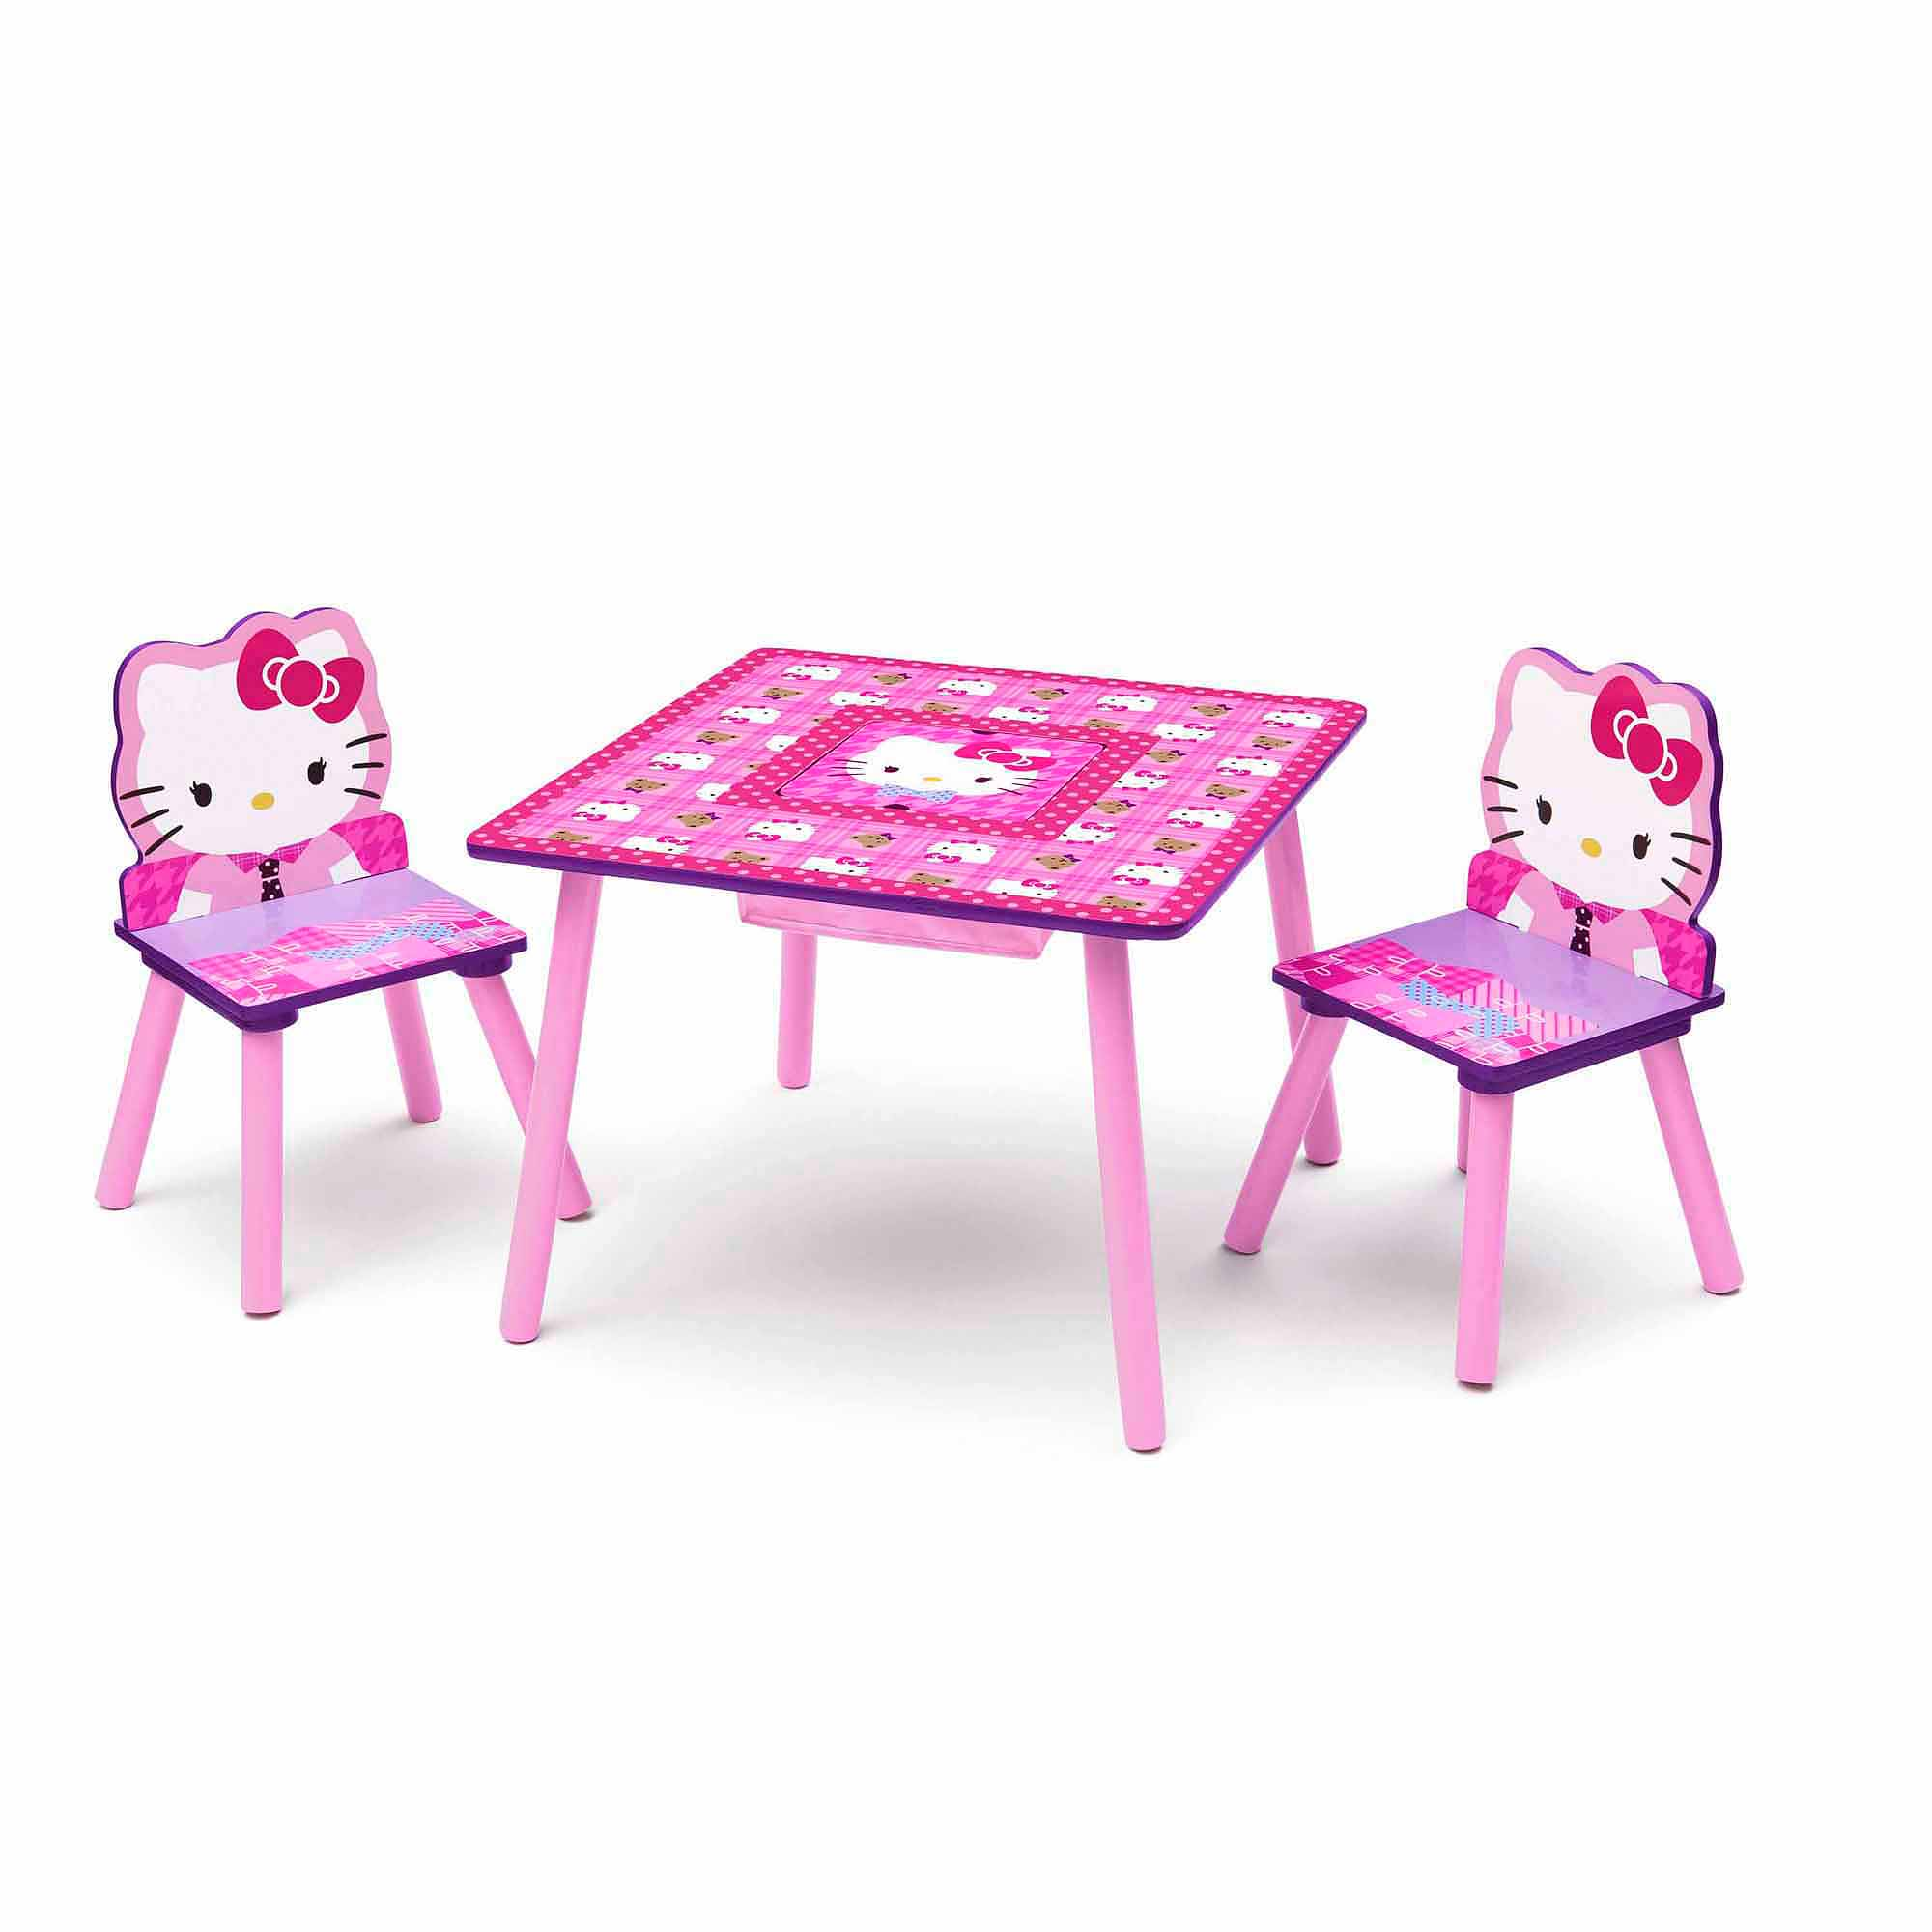 Hello Kitty Table and Chair Set with Storage Walmart